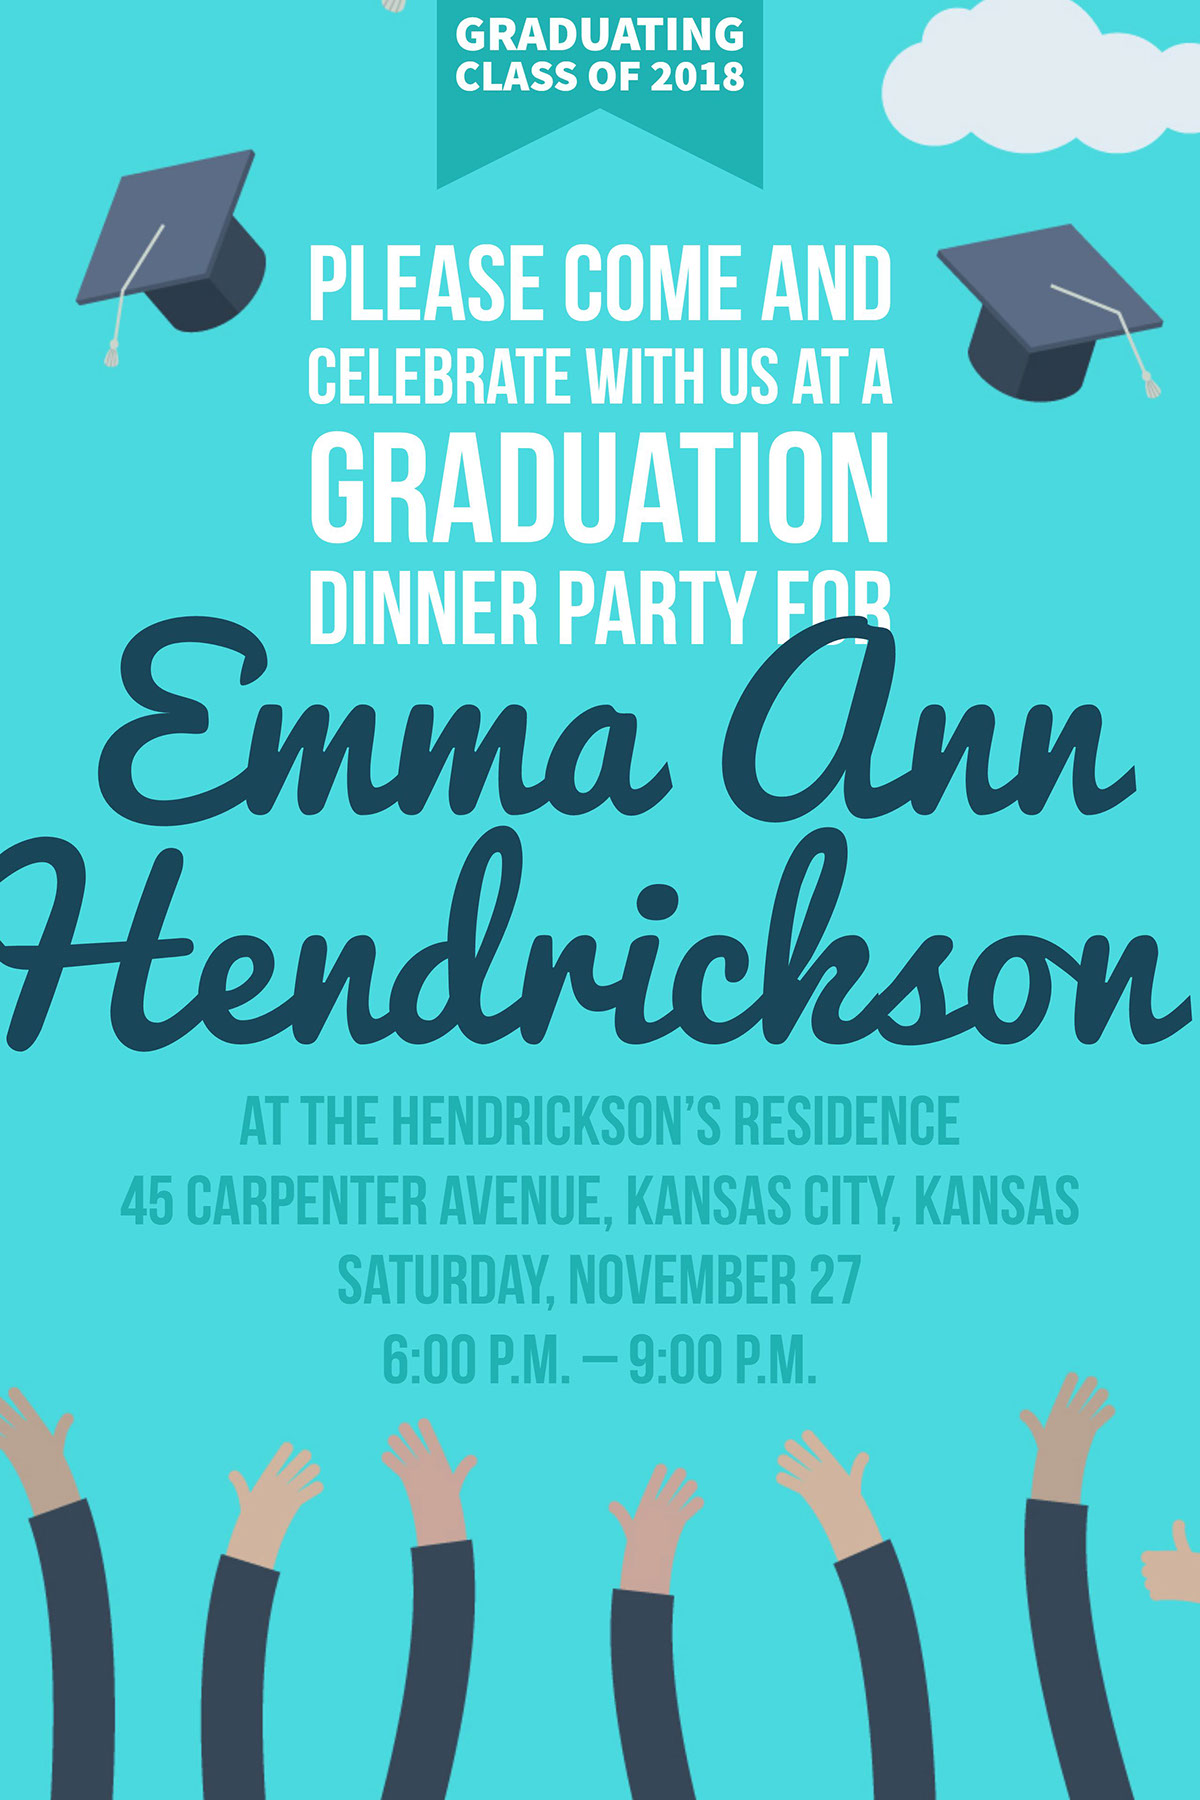 at the Hendrickson's residence  45 Carpenter Avenue, Kansas City, Kansas  Saturday, November 27 6:00 p.m. – 9:00 p.m.  at the Hendrickson's residence  45 Carpenter Avenue, Kansas City, Kansas  Saturday, November 27 6:00 p.m. – 9:00 p.m.  Hendrickson  Please come and celebrate with us at a graduation dinner party for  Emma Ann GRADUATING  CLASS OF 2018